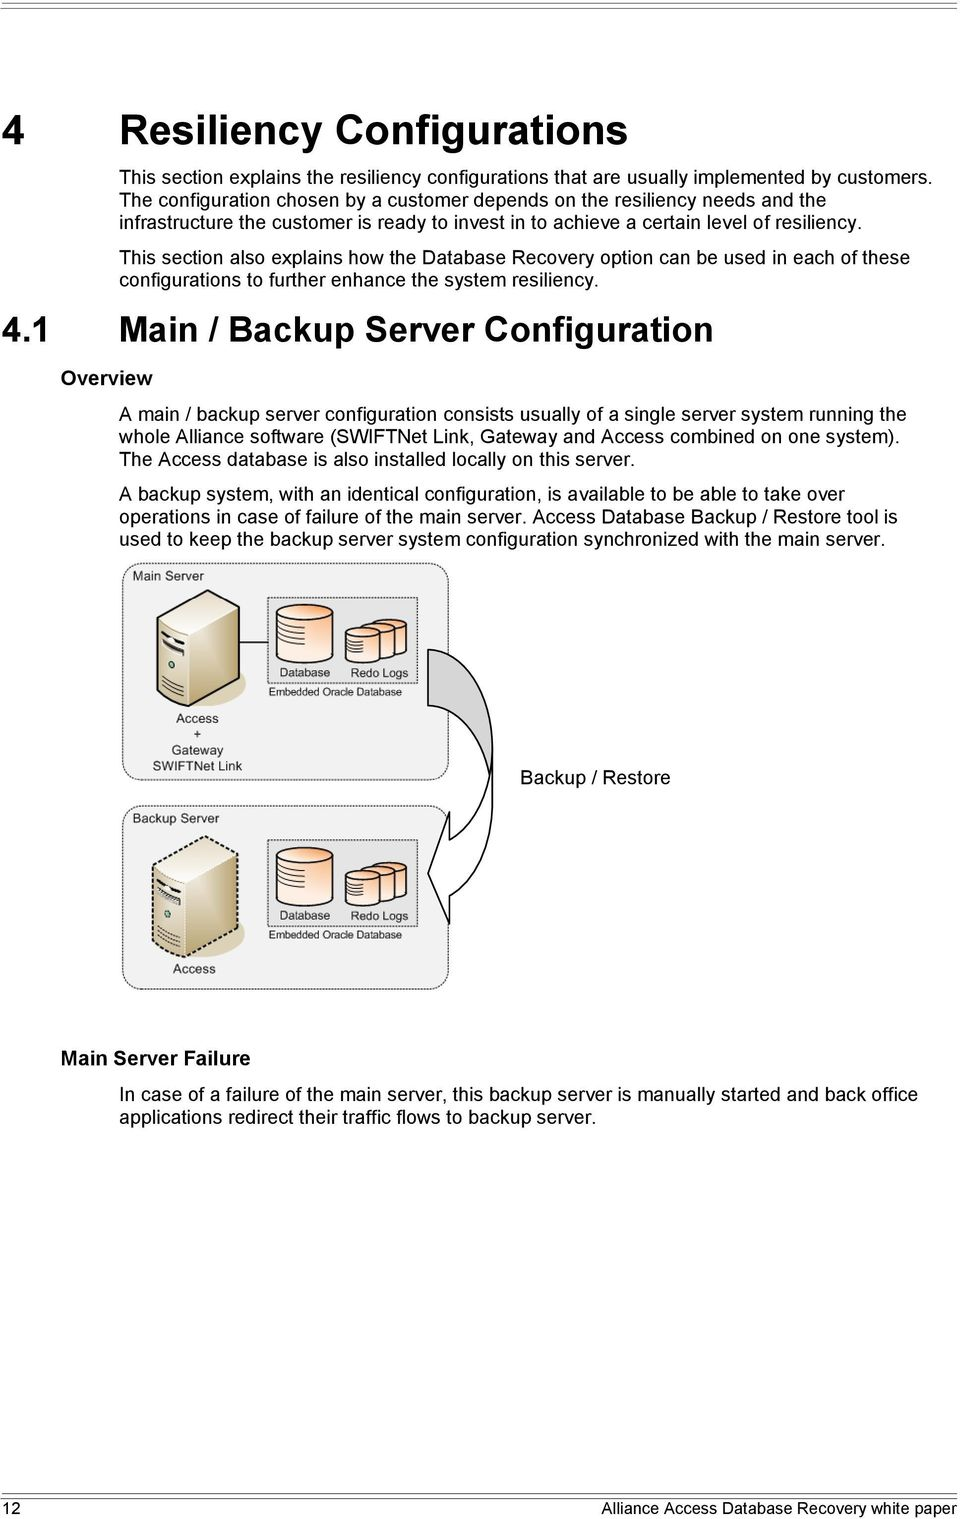 This section also explains how the Database Recovery option can be used in each of these configurations to further enhance the system resiliency. 4.